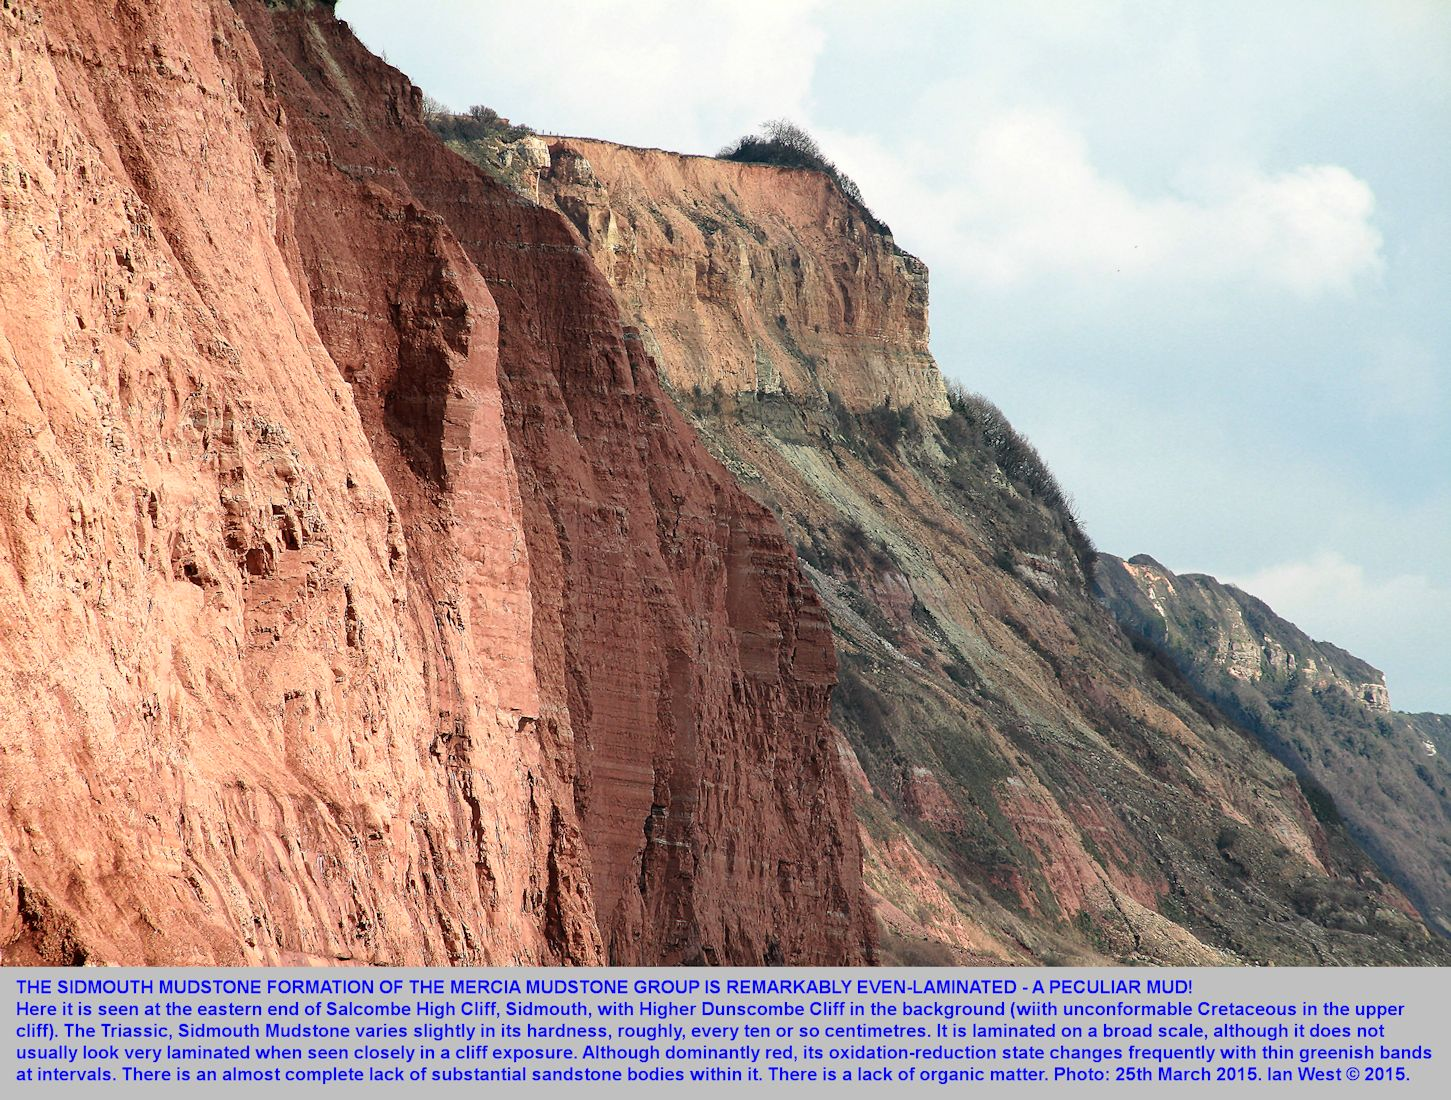 A high cliff of Sidmouth Mudstone, at the eastern end of Salcombe High Cliff, Sidmouth, Devon, shows the parallel bedding in the mudstone